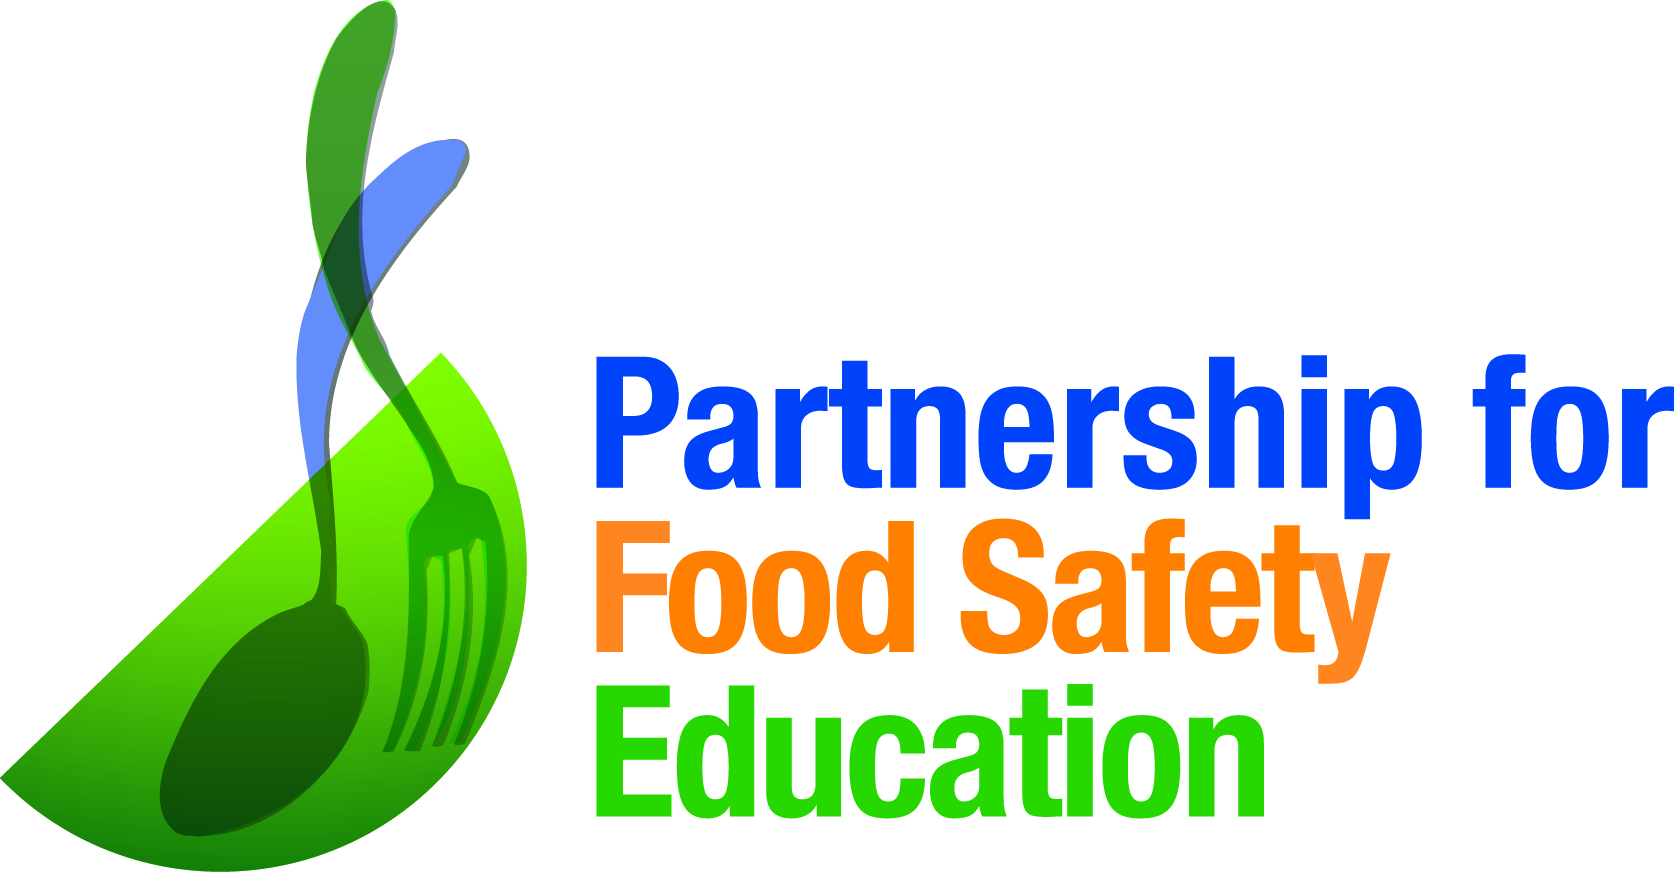 The Partnership for Food Safety Education Logo